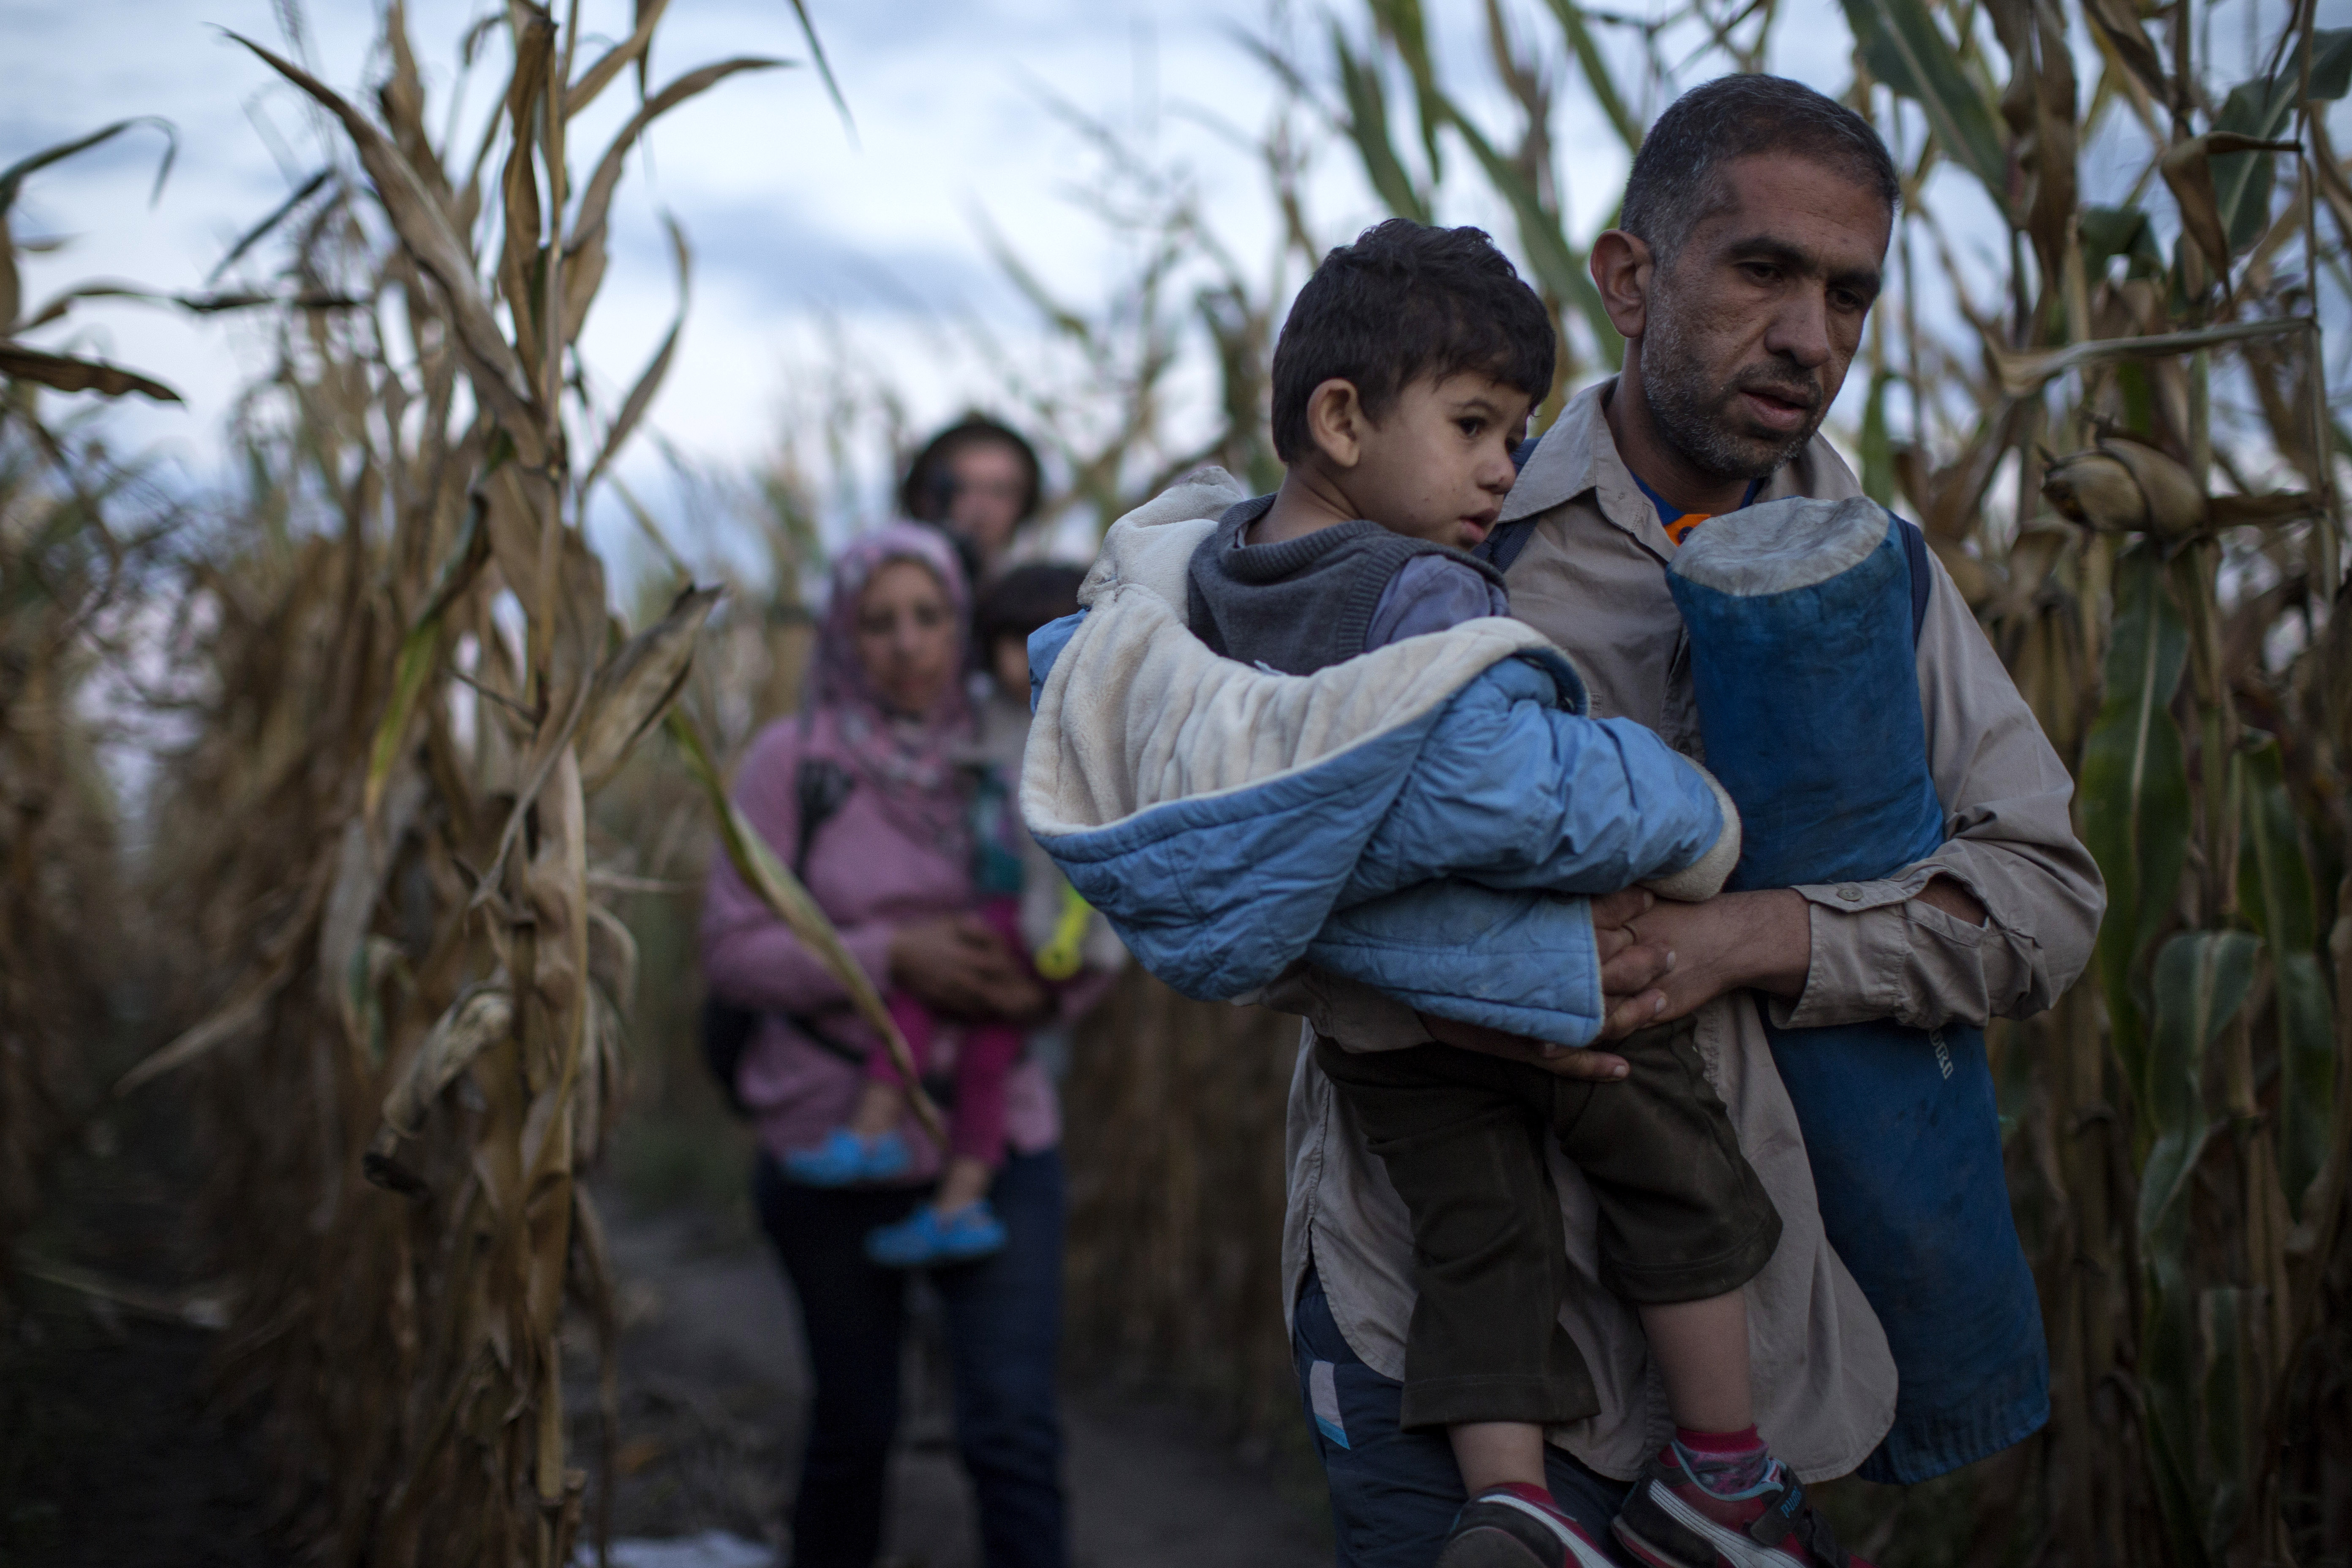 Refugees are smuggled through fields and forests in an attempt to evade the Hungarian police close to the Serbian border on September 8, 2015 in Roszke, Hungary.